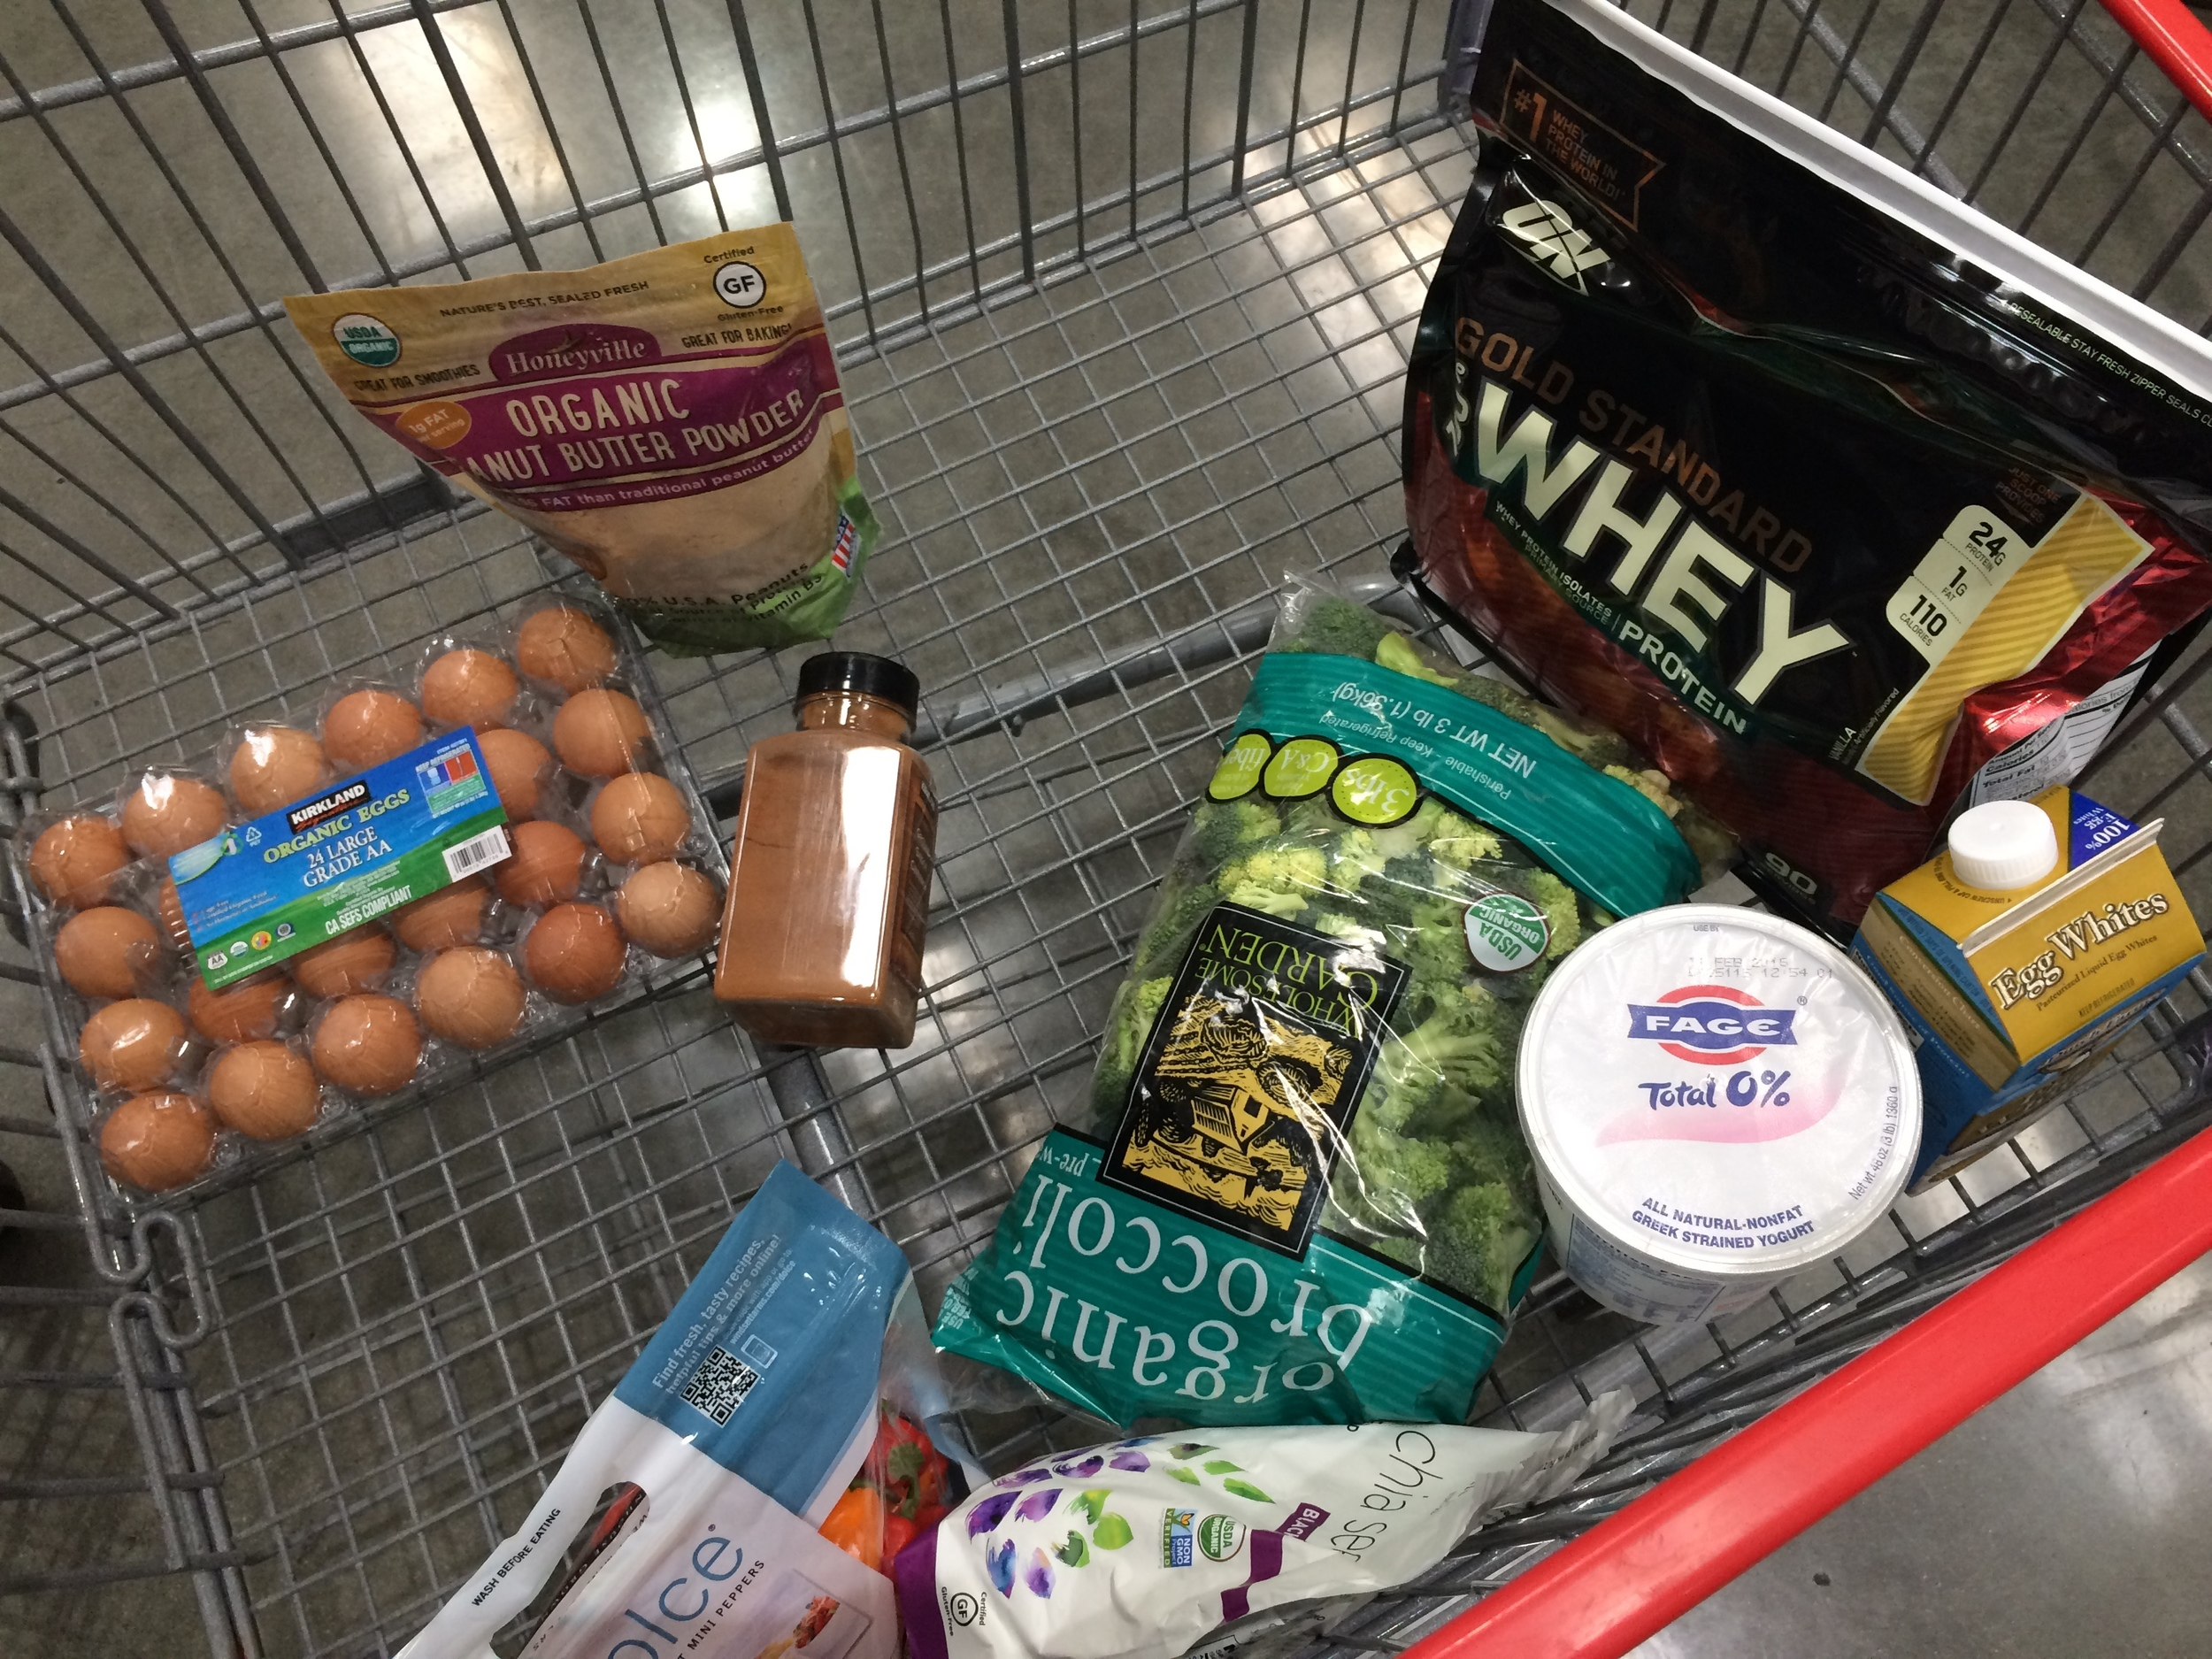 The most stereotypical January Costco cart ever